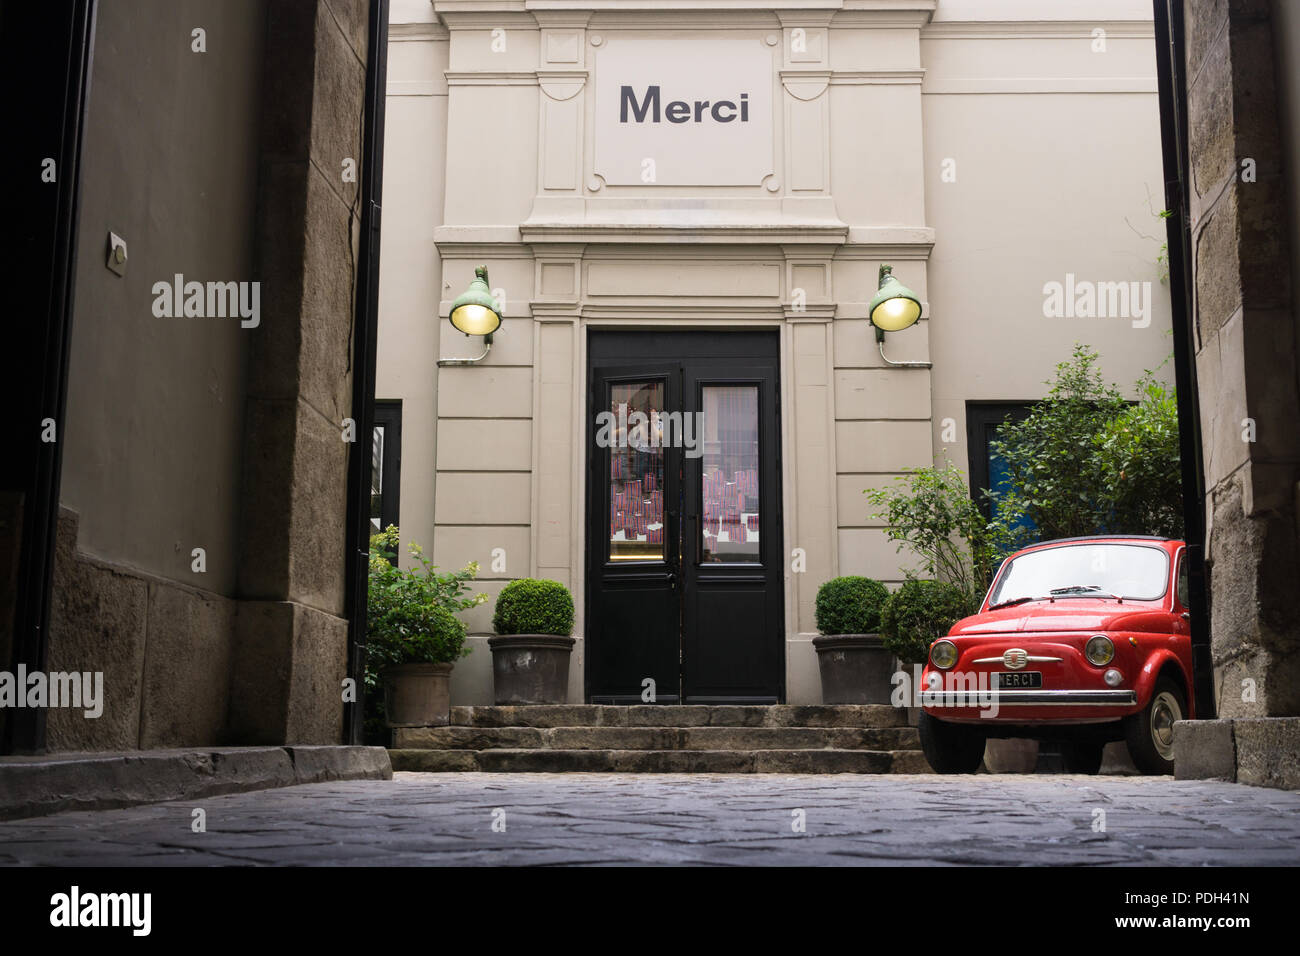 Merci Paris Stock Photos & Merci Paris Stock Images - Alamy